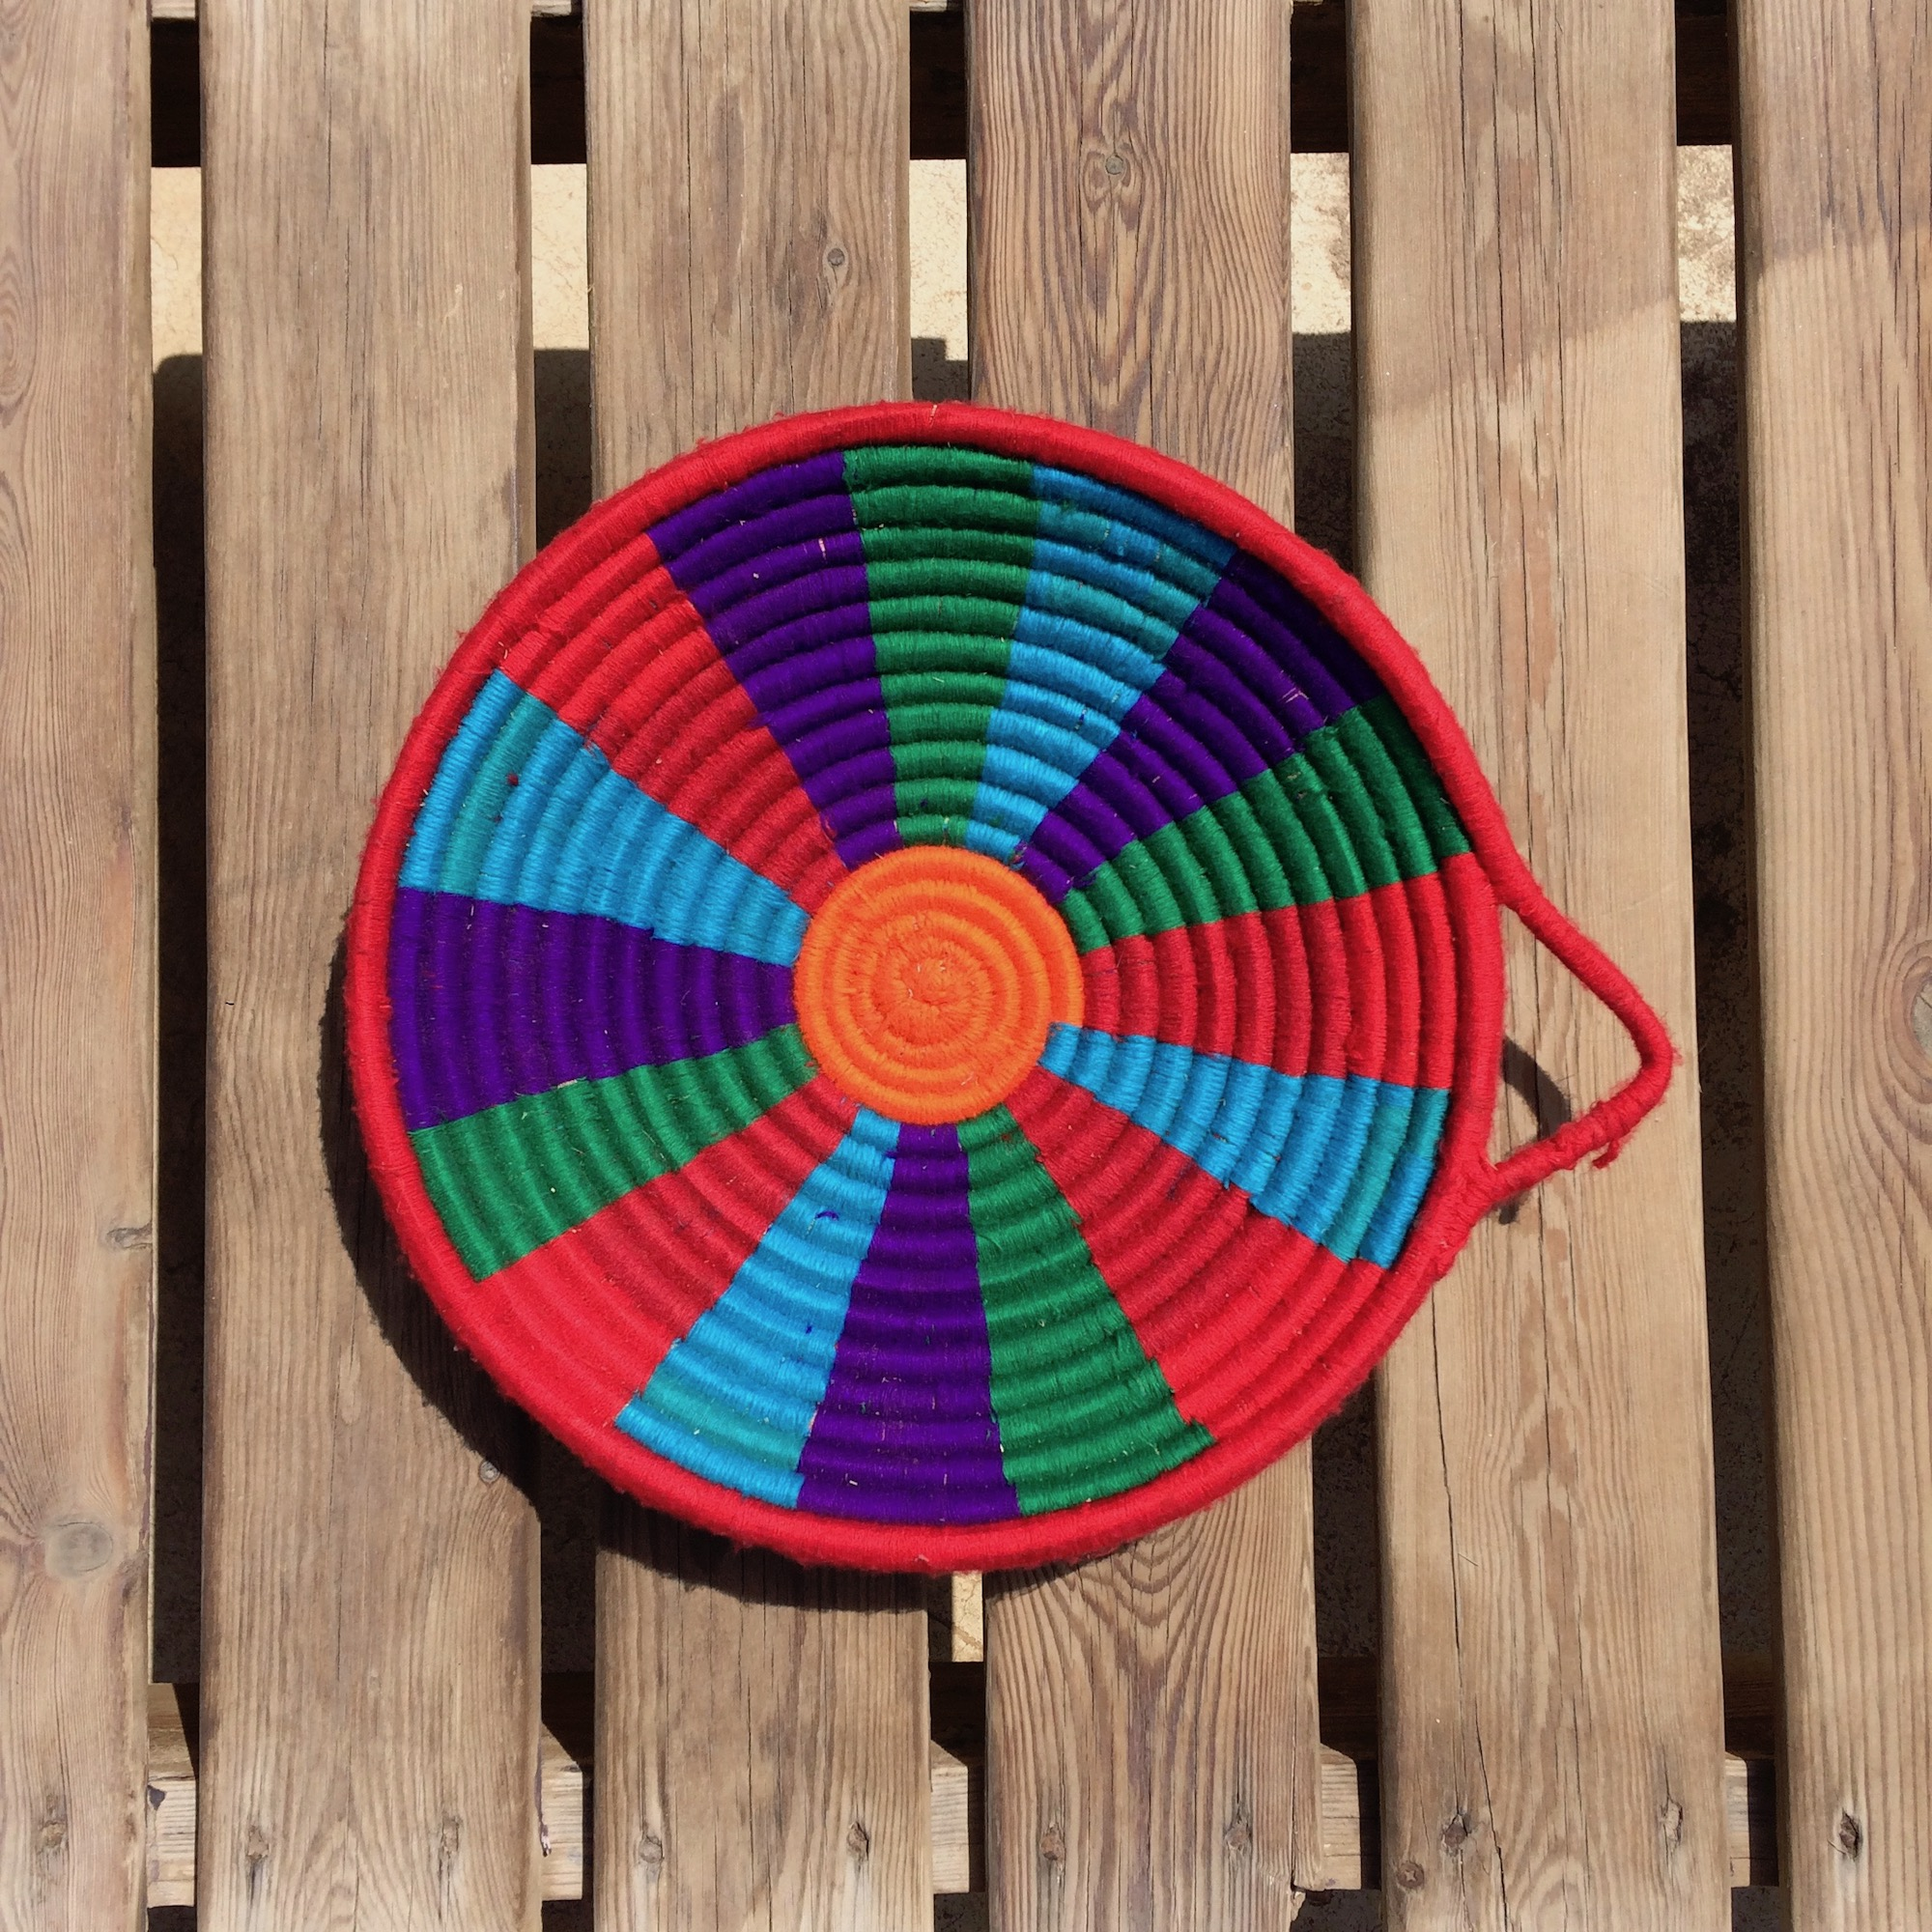 Handwoven Colourful Egyptian Basket from Aswan